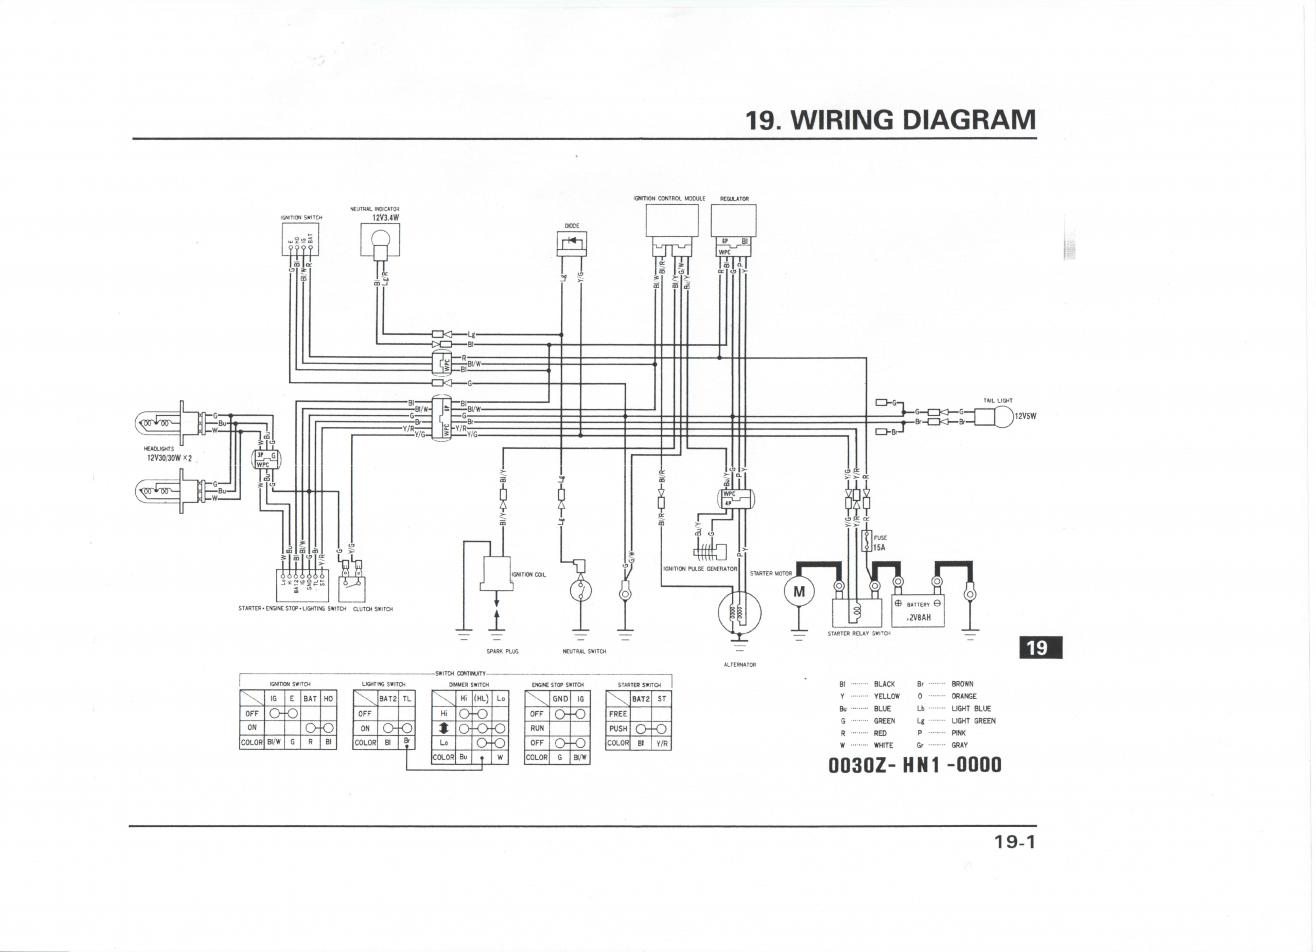 honda trx400ex wiring diagram wiring diagram user 2001 honda trx 400 wiring diagram wiring diagram expert 2007 honda 400ex wiring diagram honda trx400ex wiring diagram